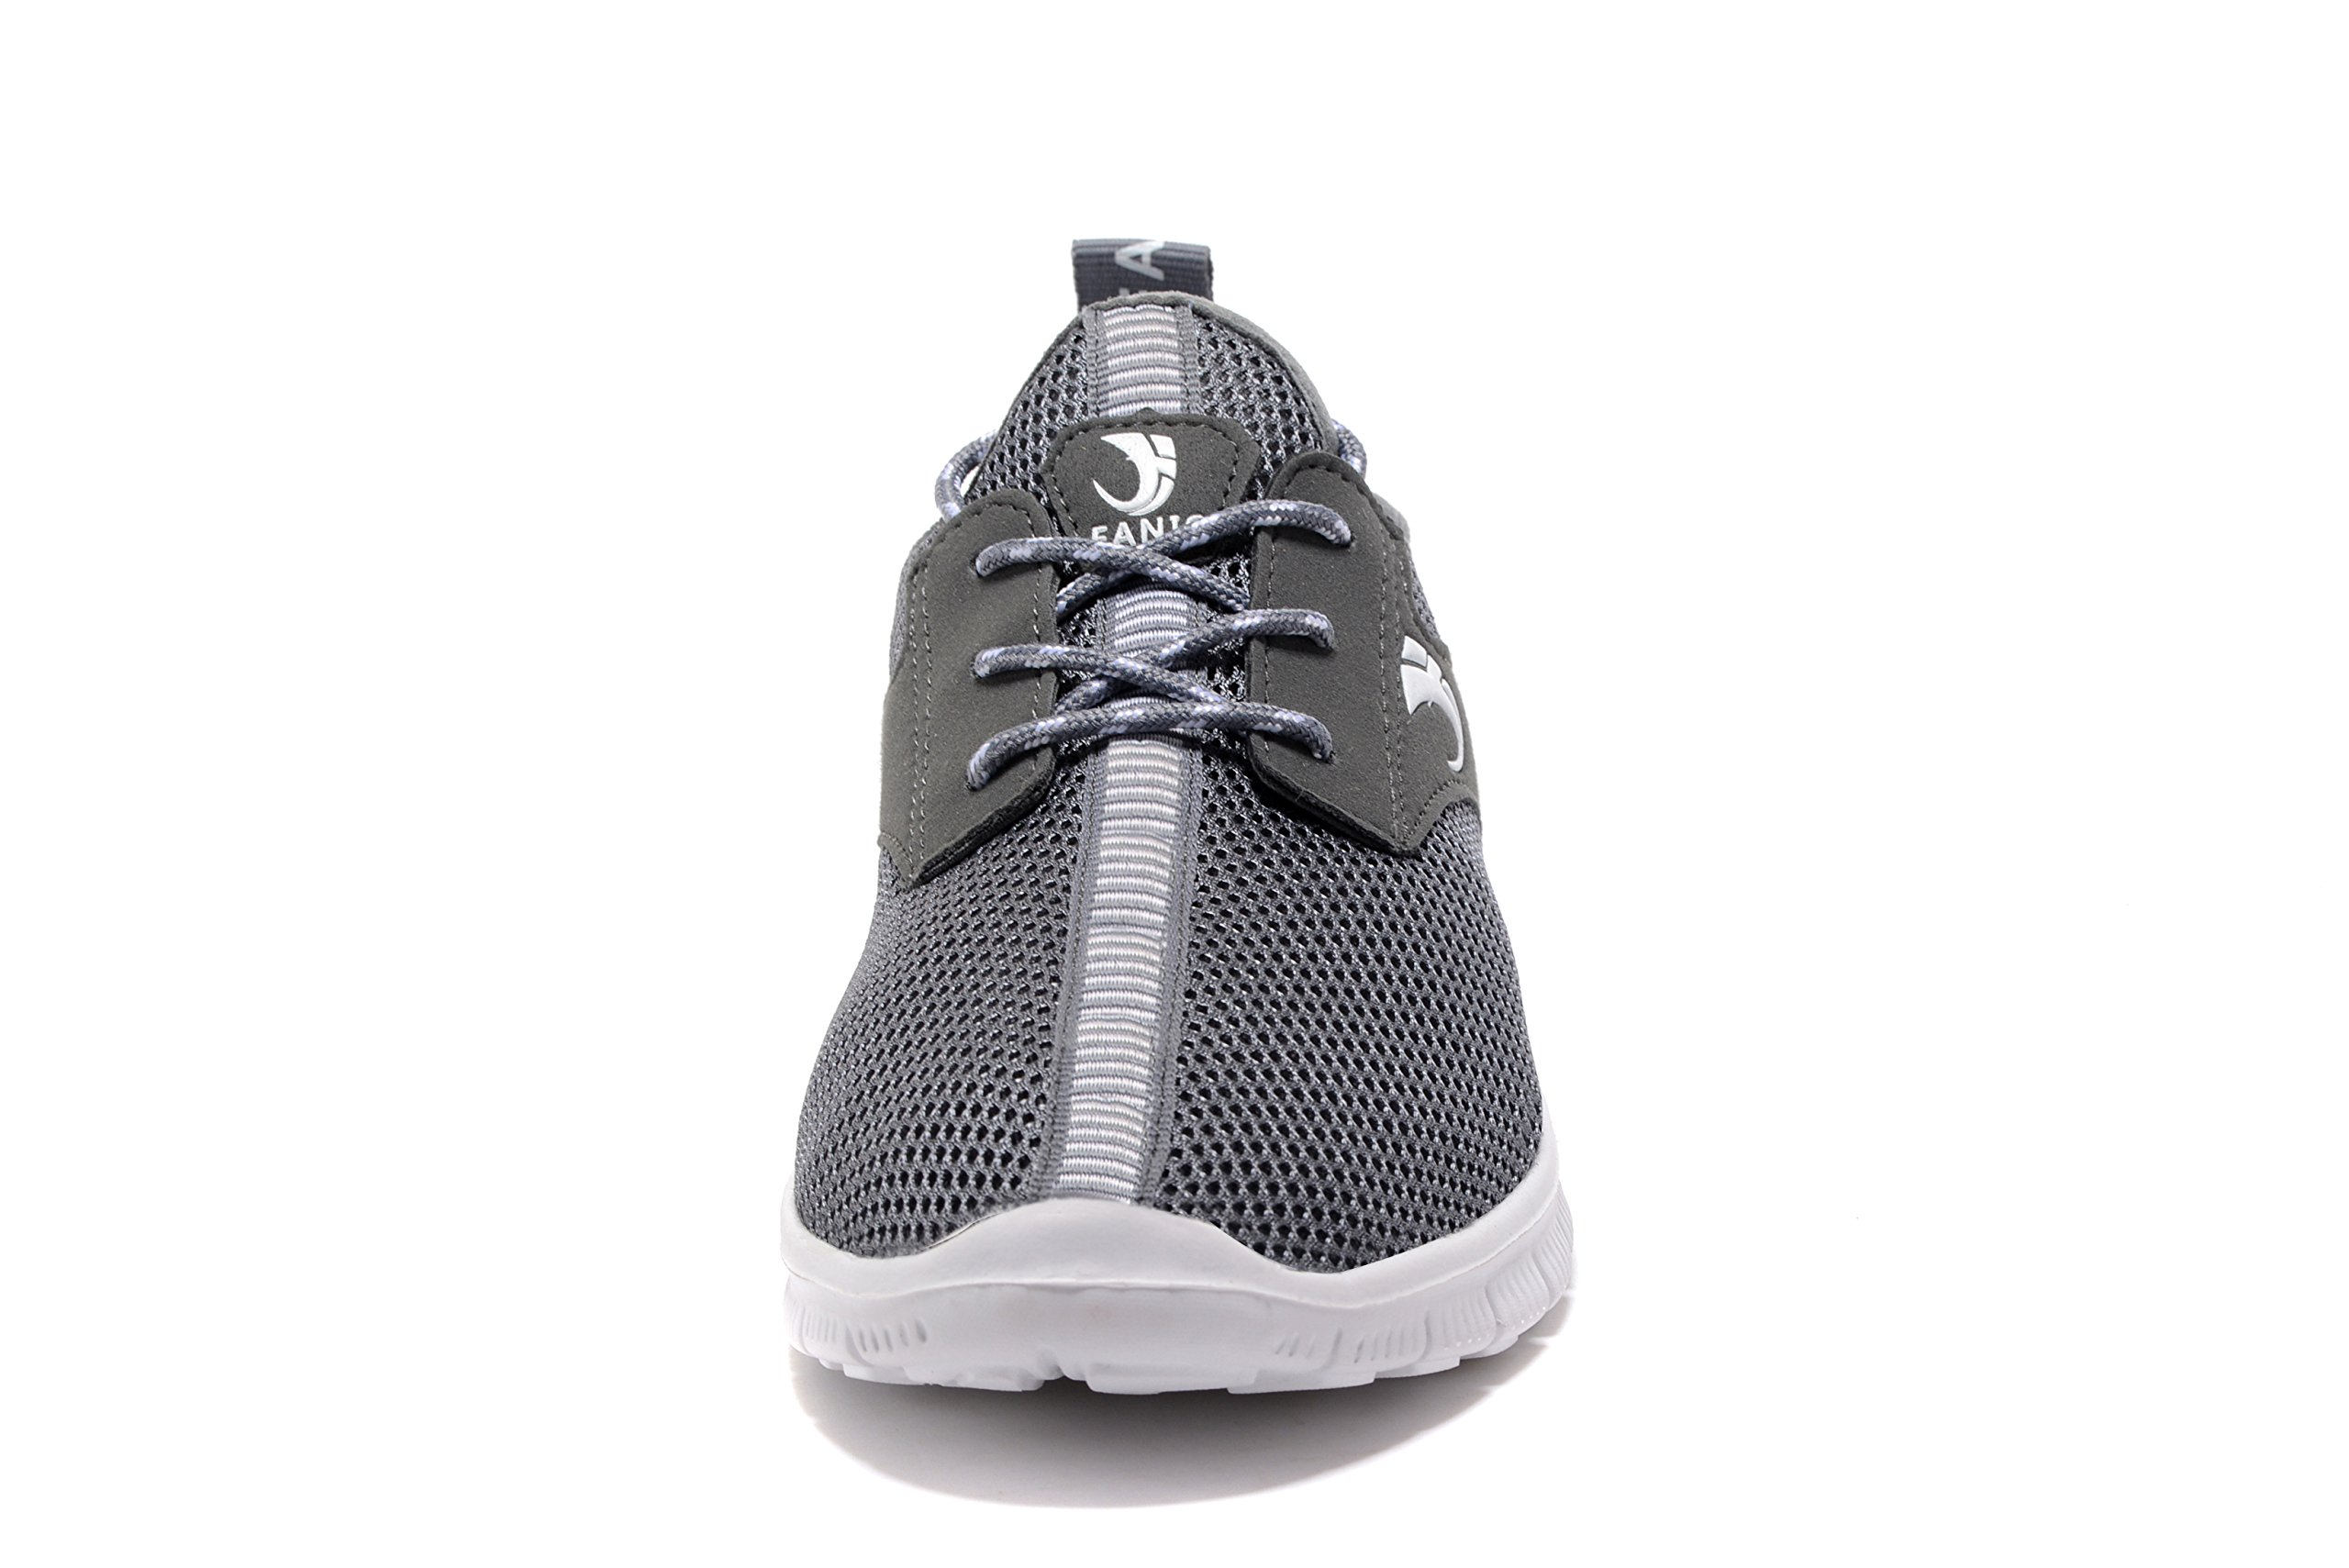 FANIC Men's Walking Shoes Workout Shoes Full Mesh Running Shoes Lightweight Comfortable Fitness Breathable Casual Sneaker (47 M EU / 12.5 D(M) US, Grey) by FANIC (Image #4)